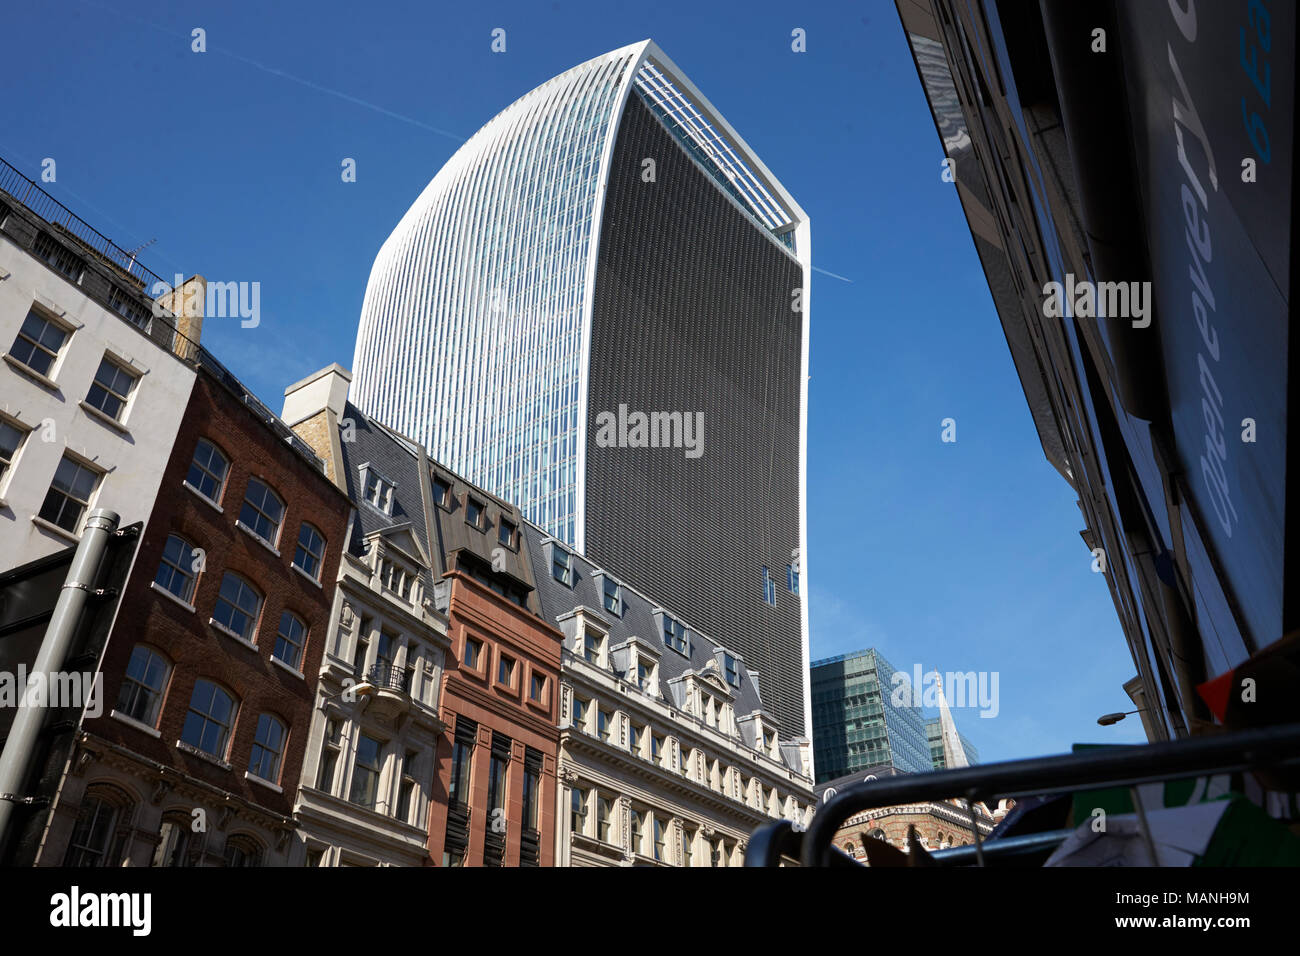 LONDON - MAY, 2017: The Walkie Talkie building, 20 Fenchurch Street, looming over a Victorian terrace, City Of London, London Stock Photo